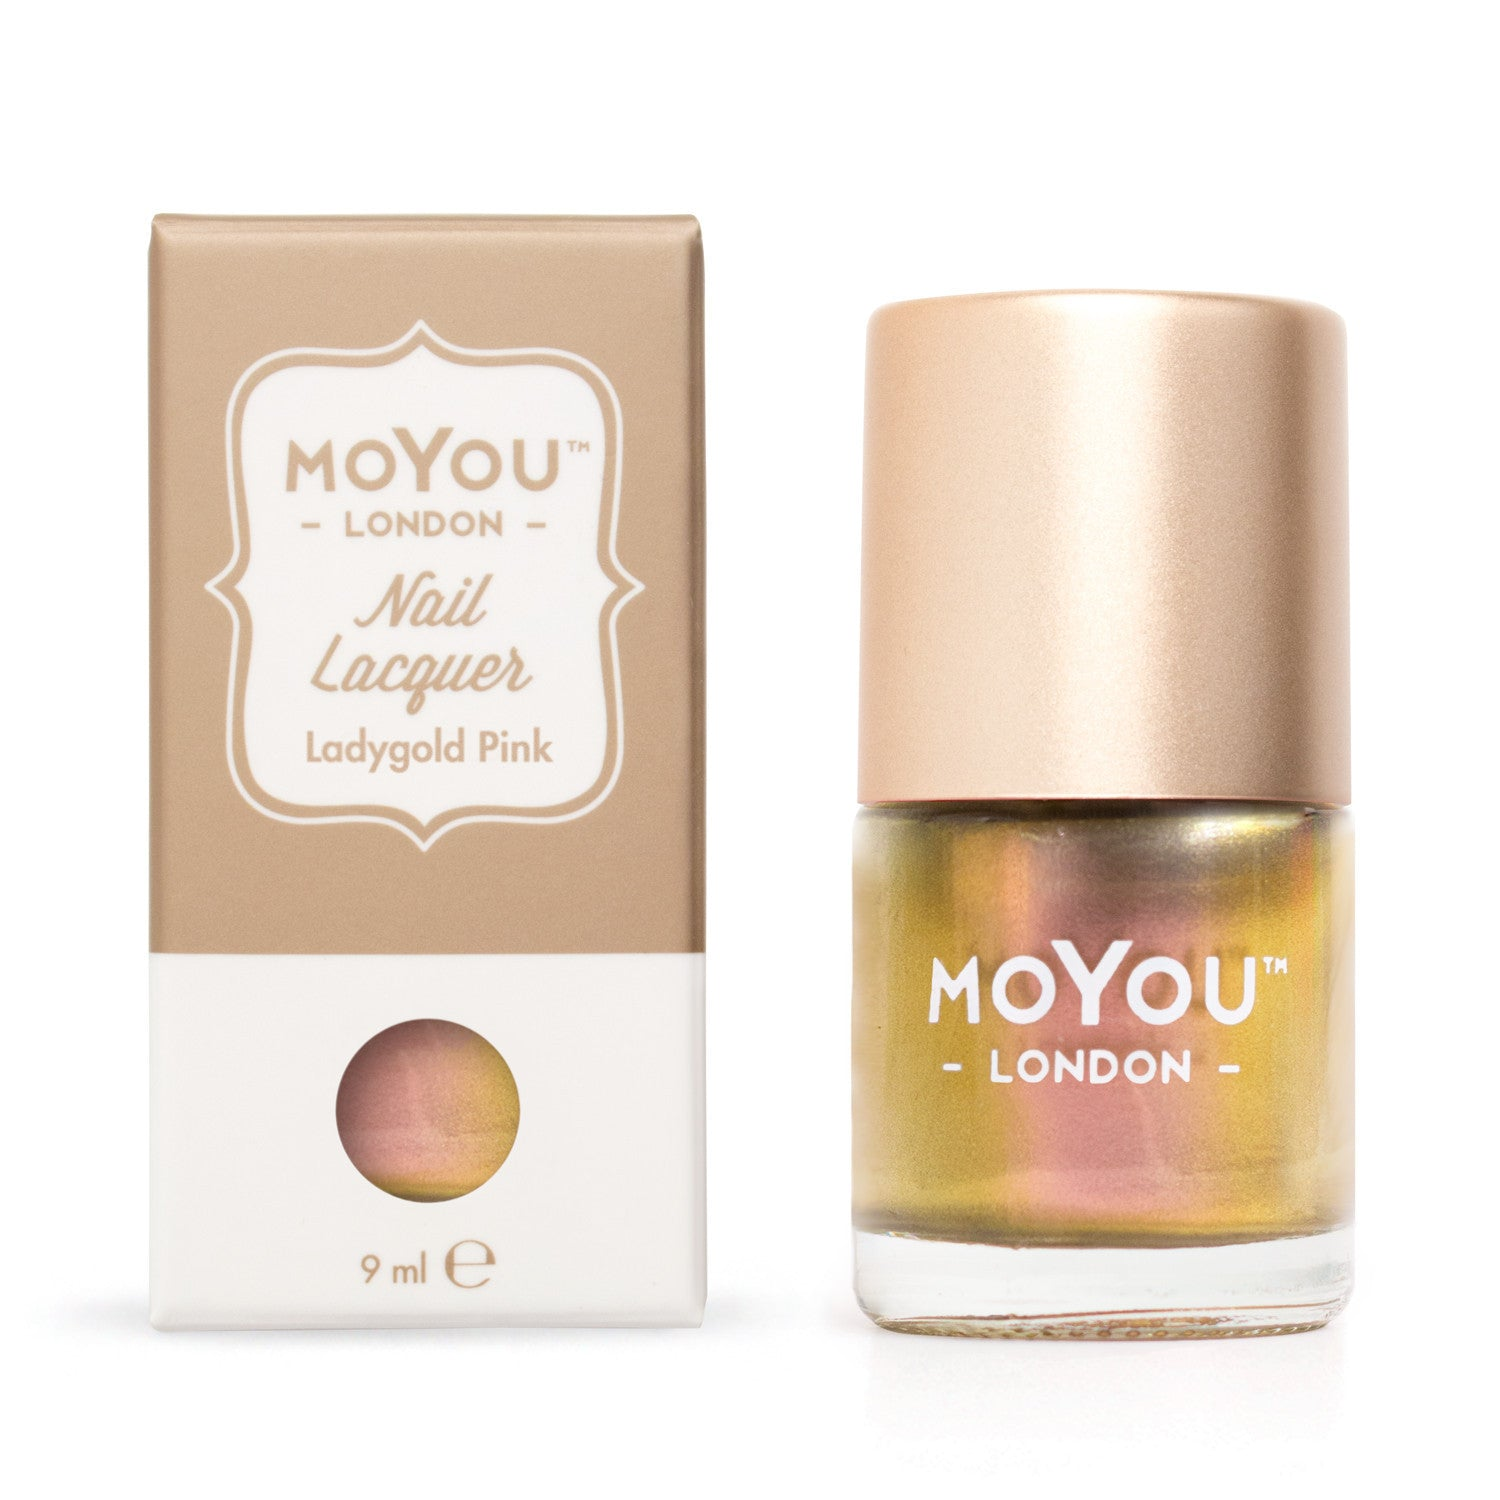 Moyou London / Stamping Nail Lacquer /  Ladygold Pink - Color Shifting Chameleon Pink Gold Stamping Polish